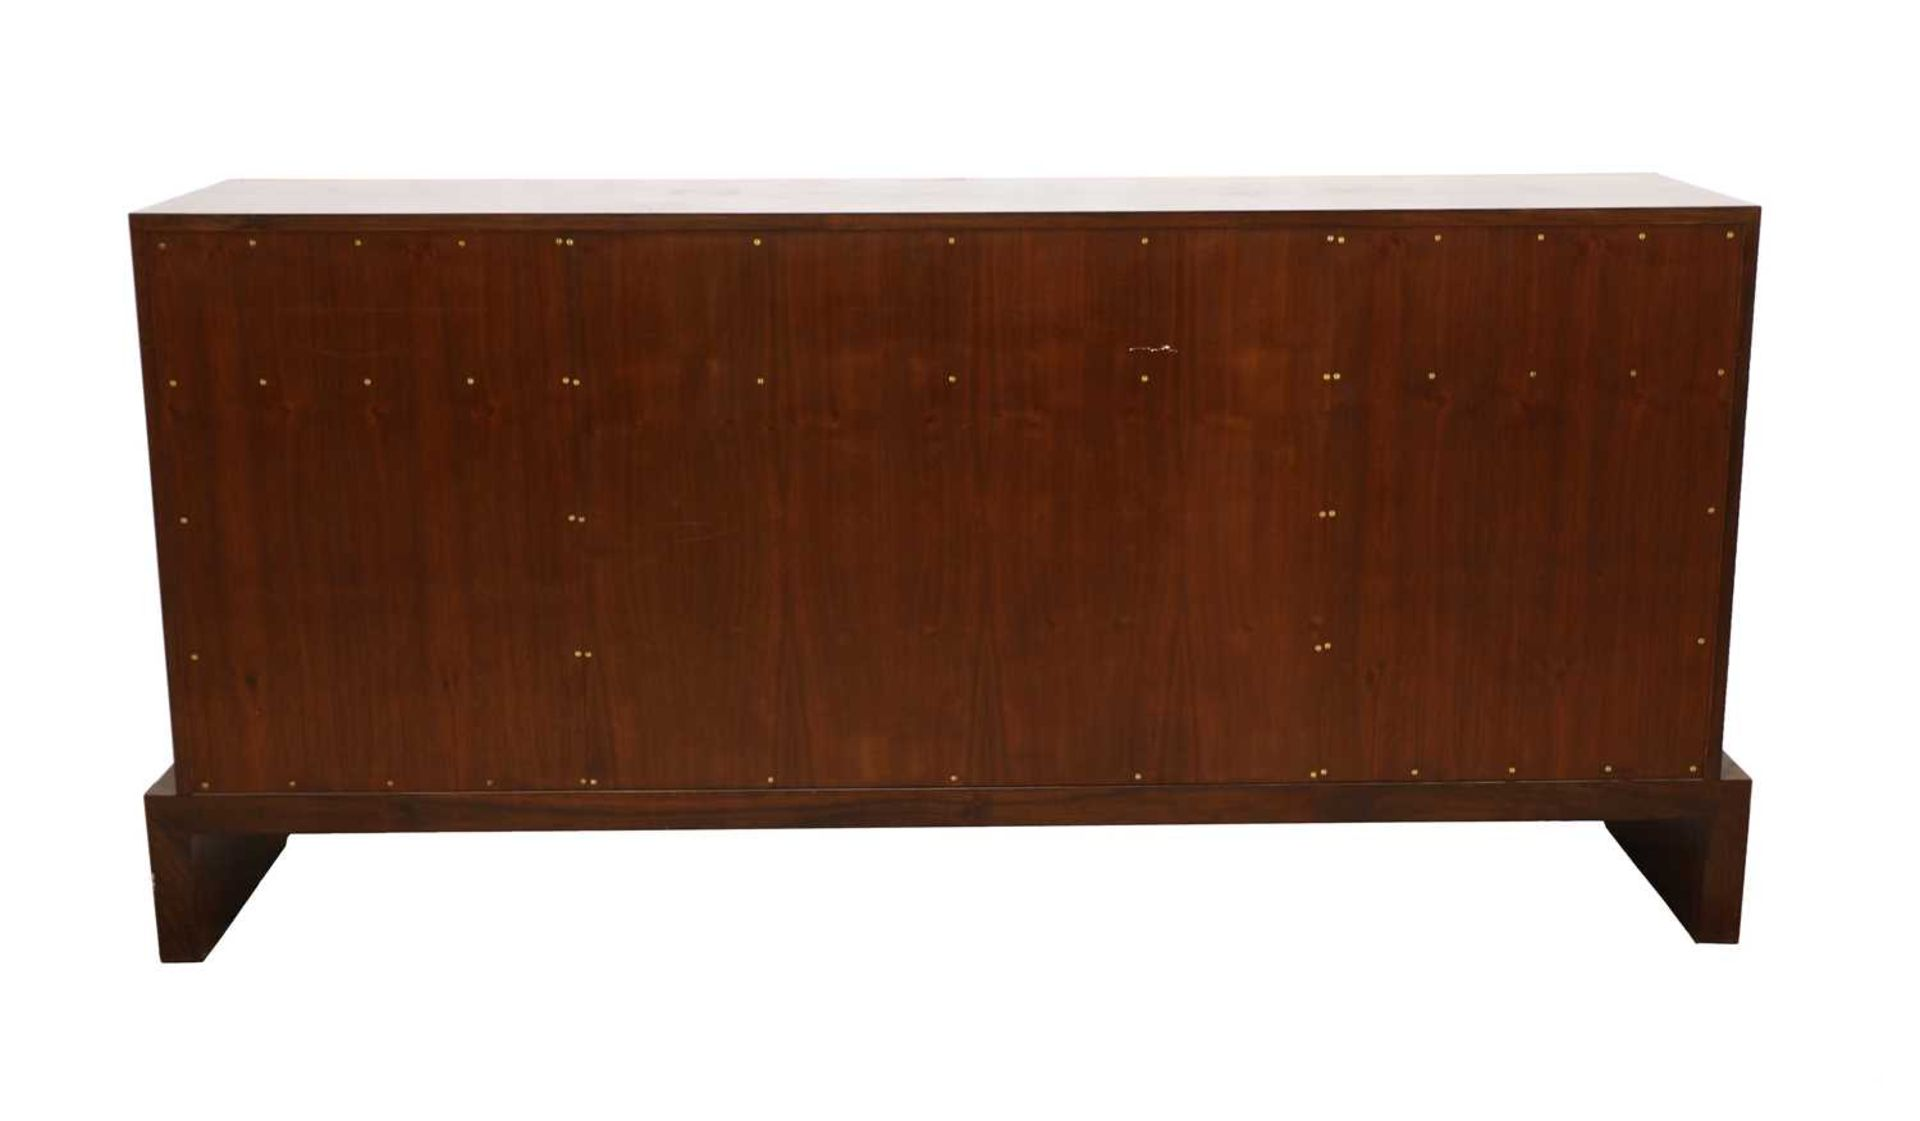 An Indian rosewood dining suite, - Image 4 of 10